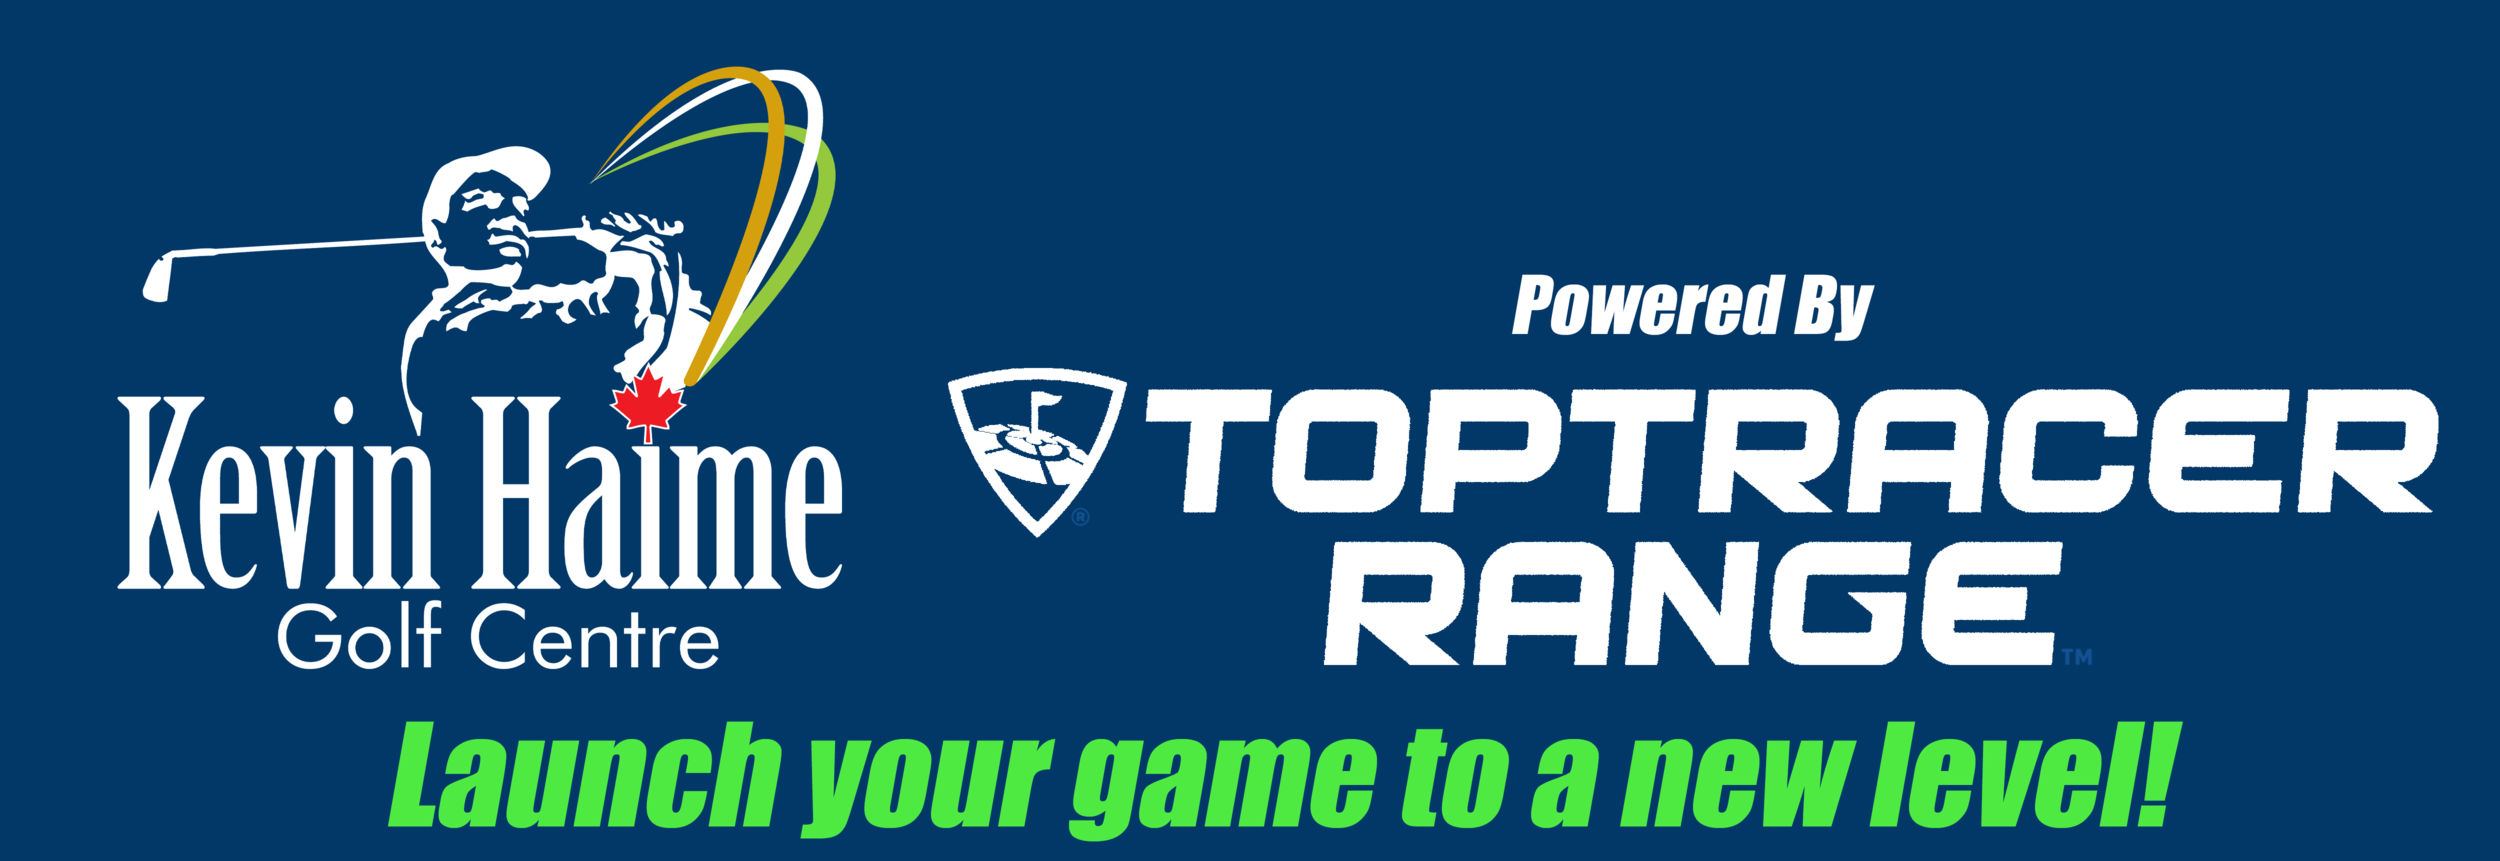 Launch your game to a new level with Top Tracer range